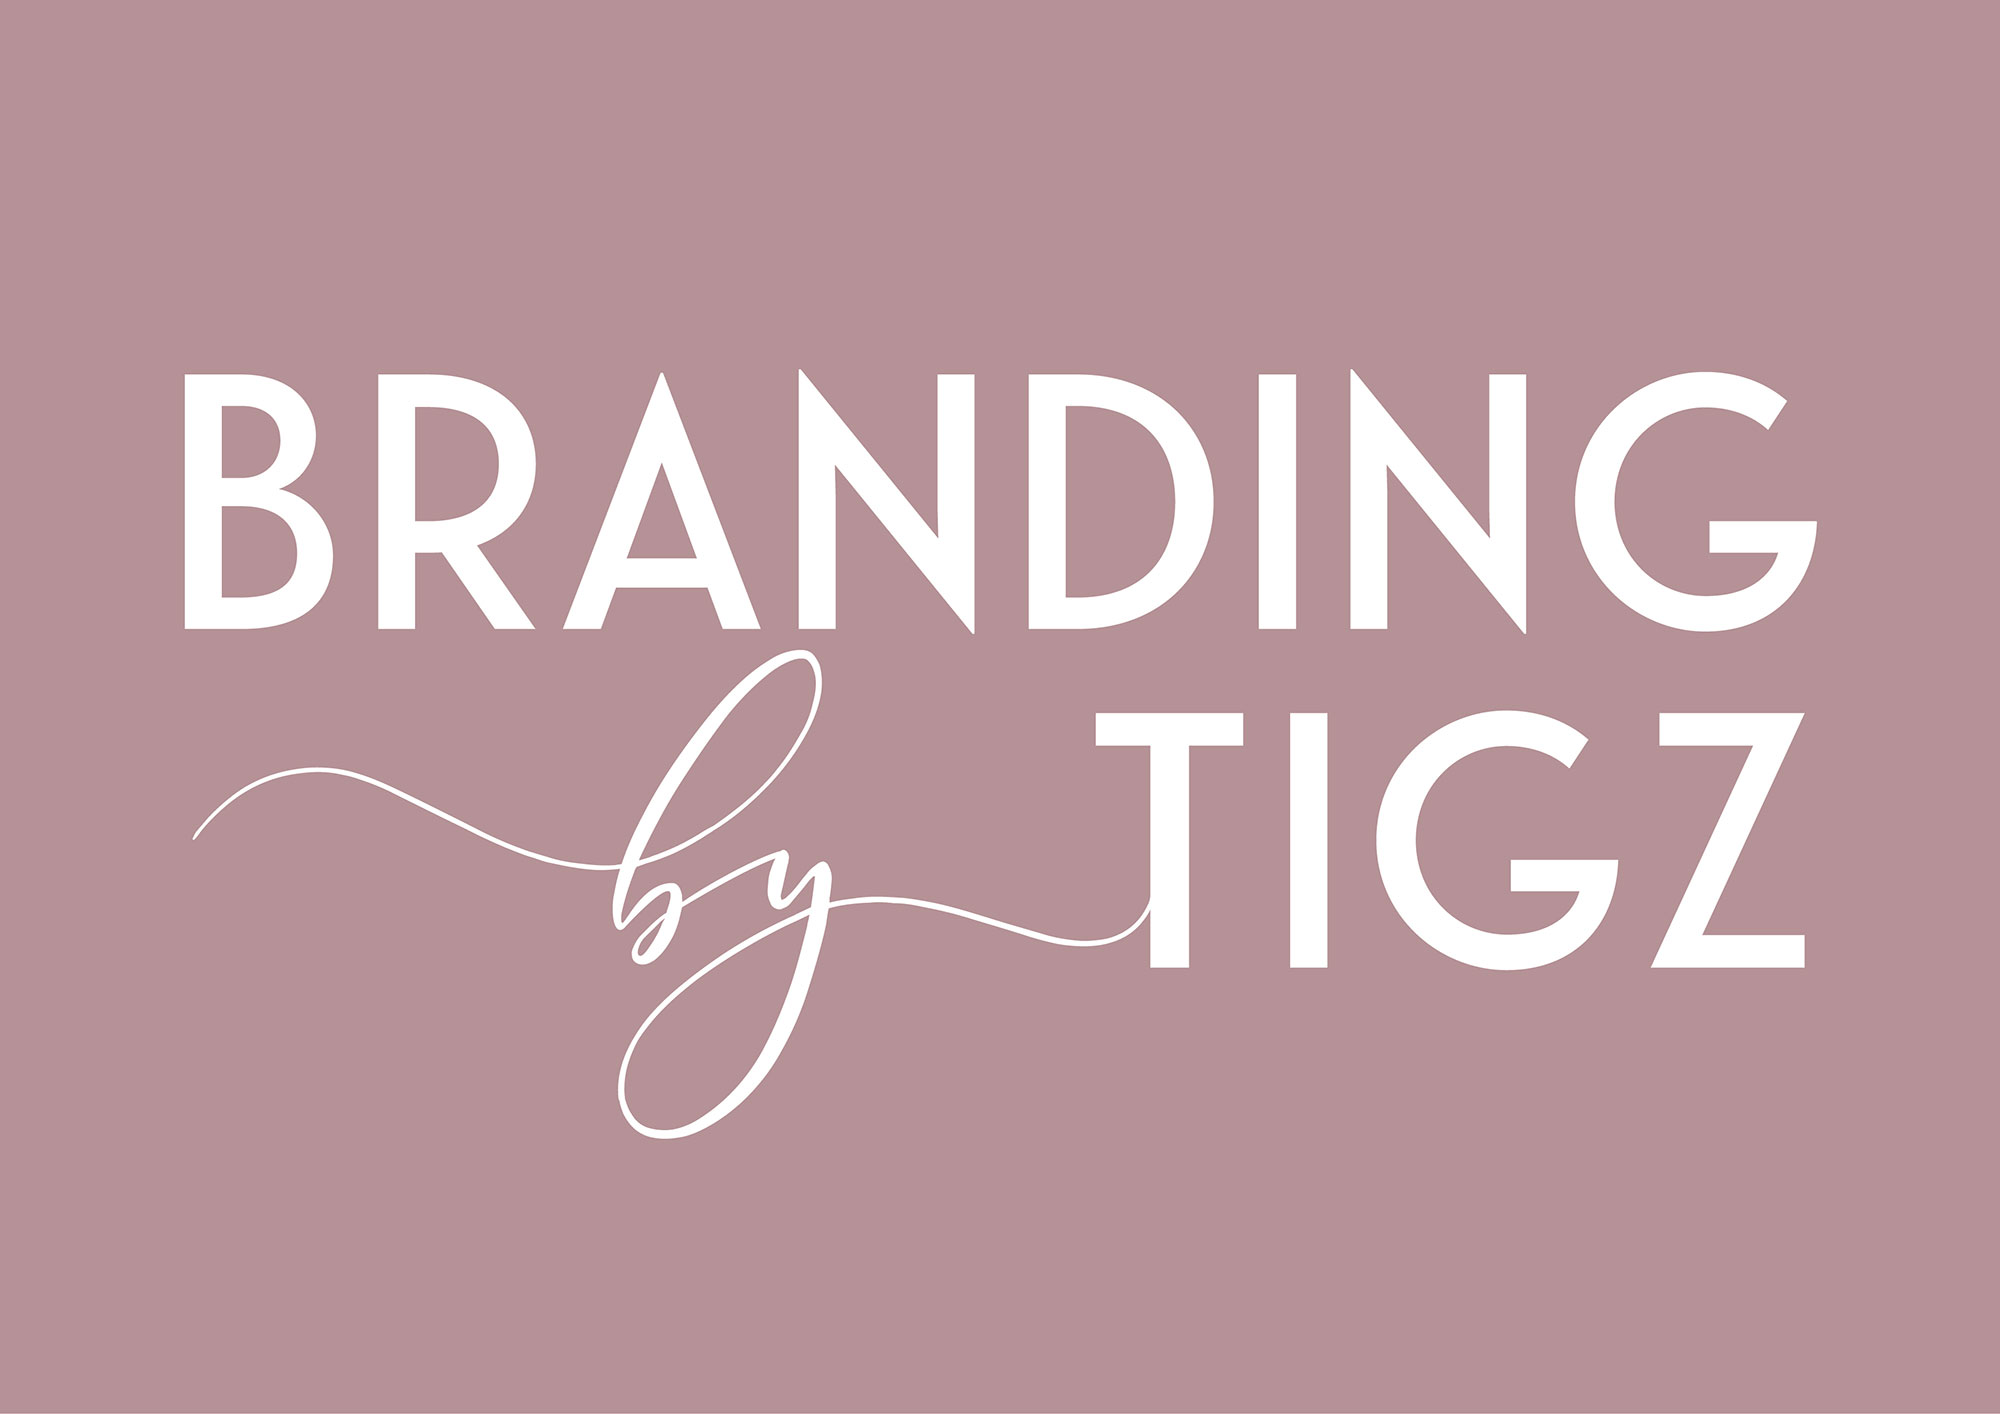 Branding By Tigz - Brand Photography and digital content services